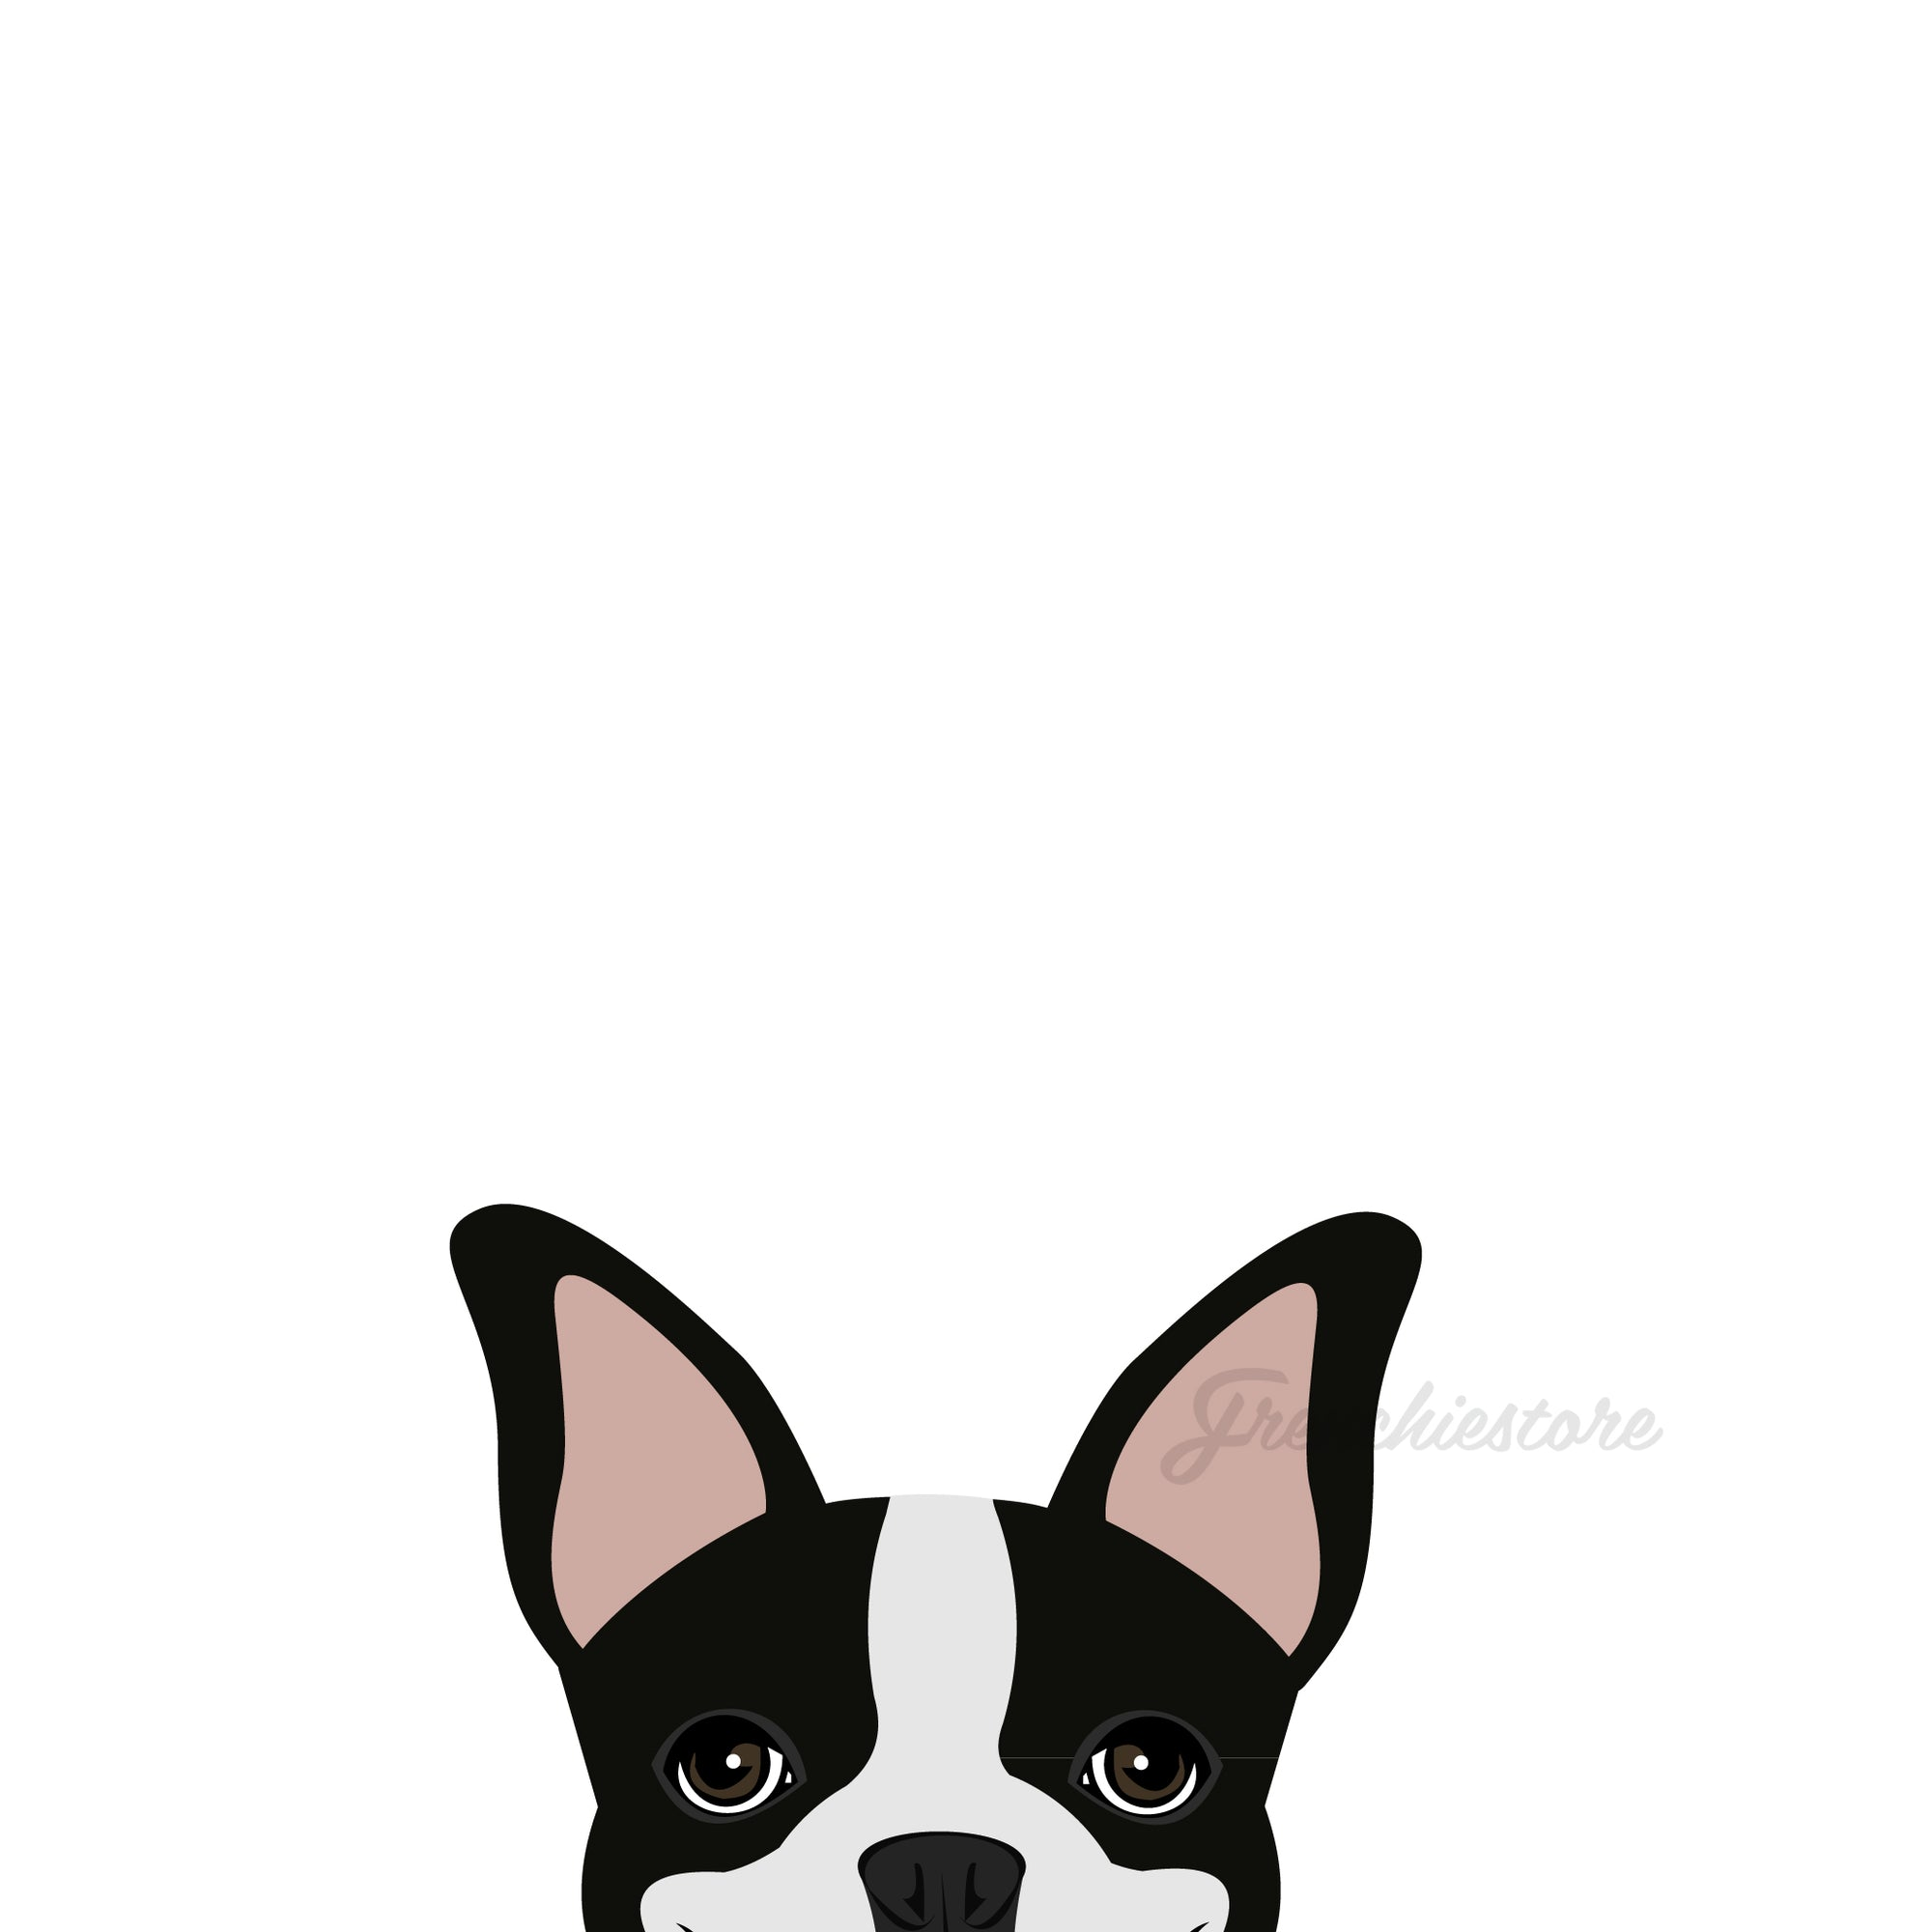 Etiqueta engomada del perro de Boston Terrier | Frenchiestore | Calcomanía de coche Black Pied Boston Terrier